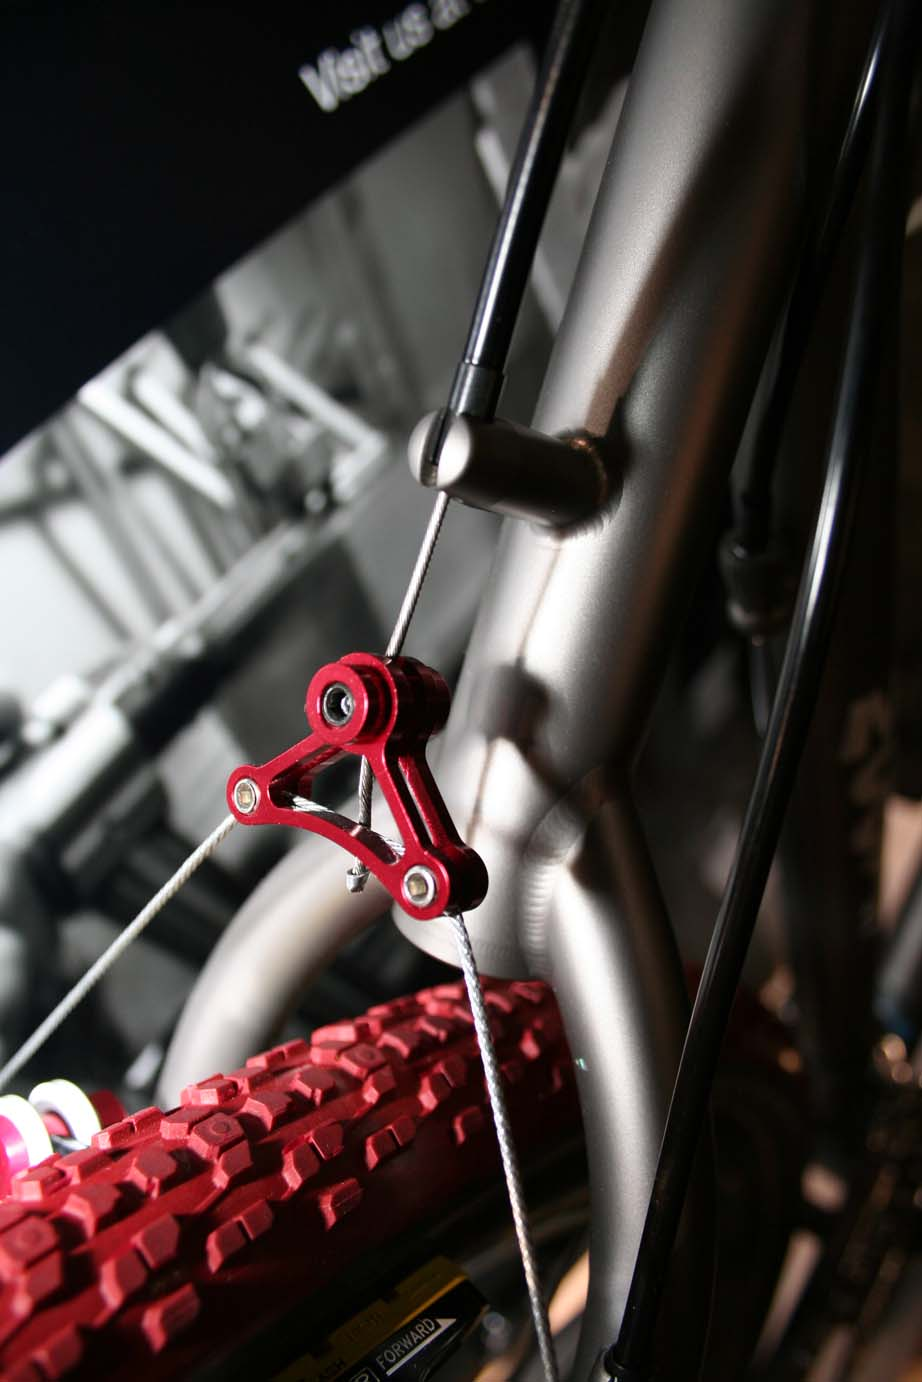 Intricate welds, elegant fittings, and red trim made this an eye-catching show bike. ?Cyclocross Magazine